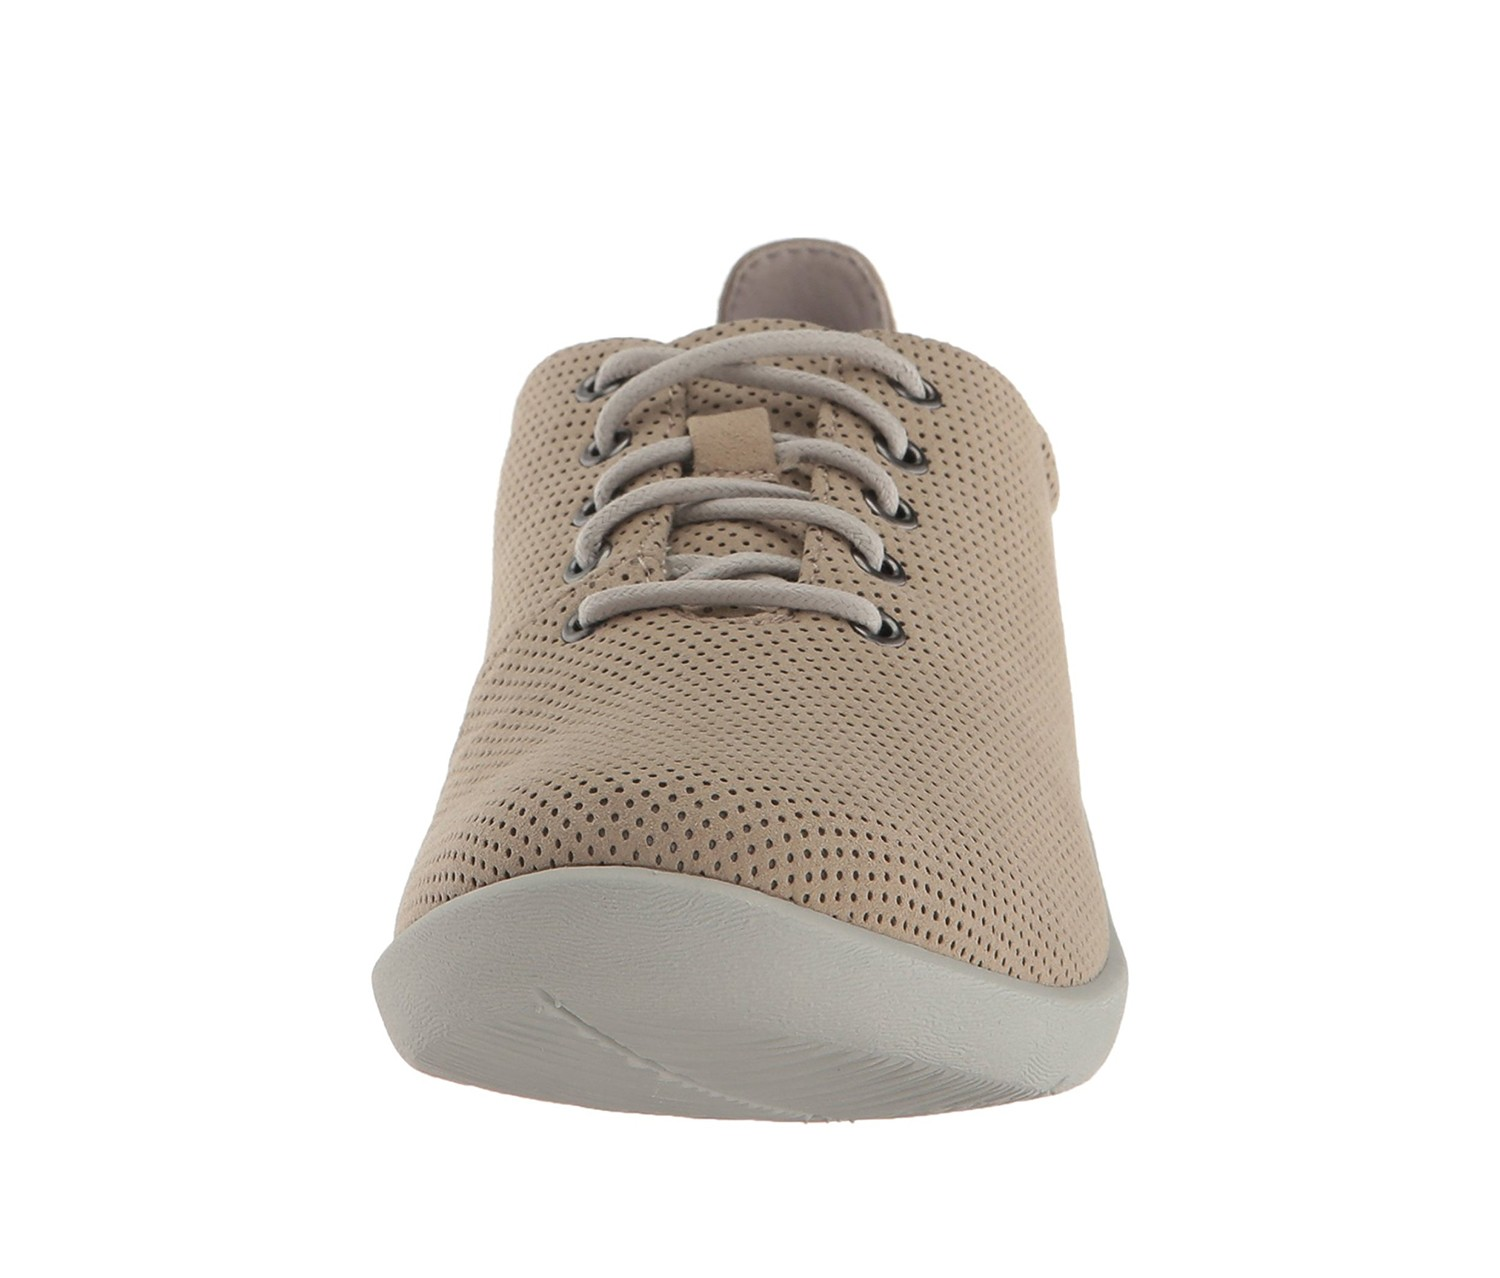 Clarks cloud steppers sillian tino